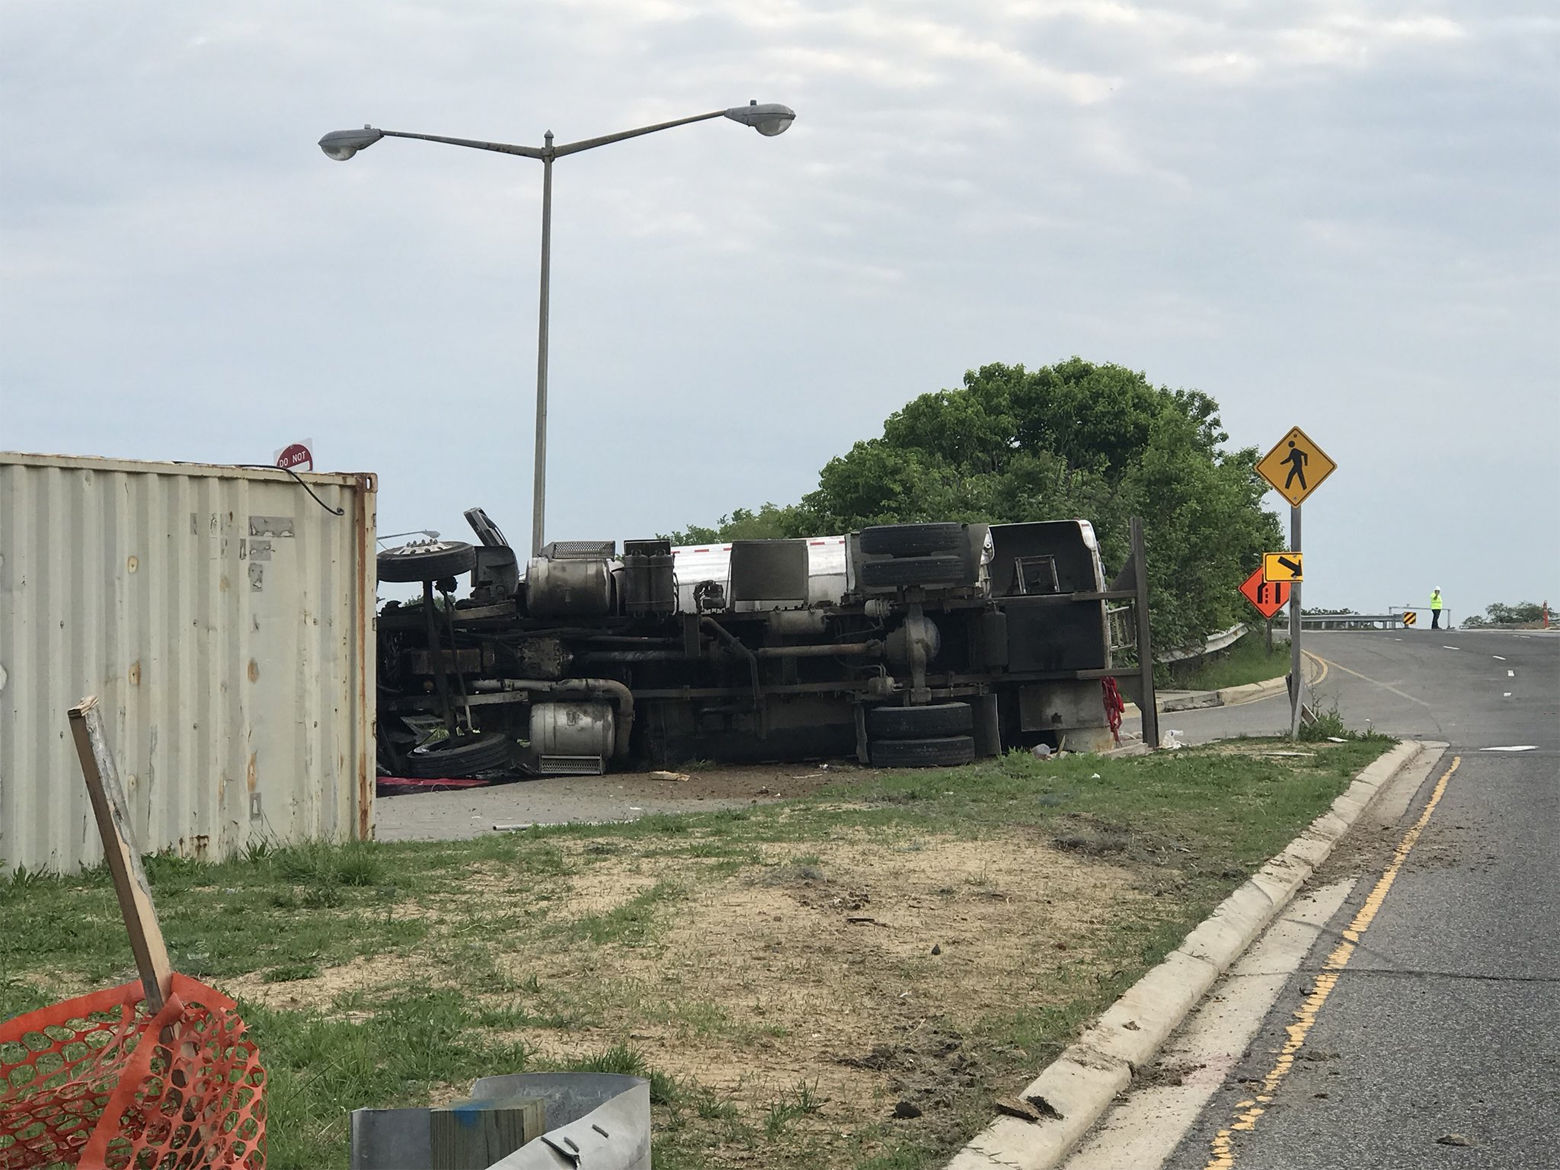 A tanker truck carrying 1700 gallons of diesel fuel overturned on South Capitol Street in Southeast D.C. during the Friday morning commute, spilling fuel into the roadway. (Courtesy D.C. Fire and EMS)